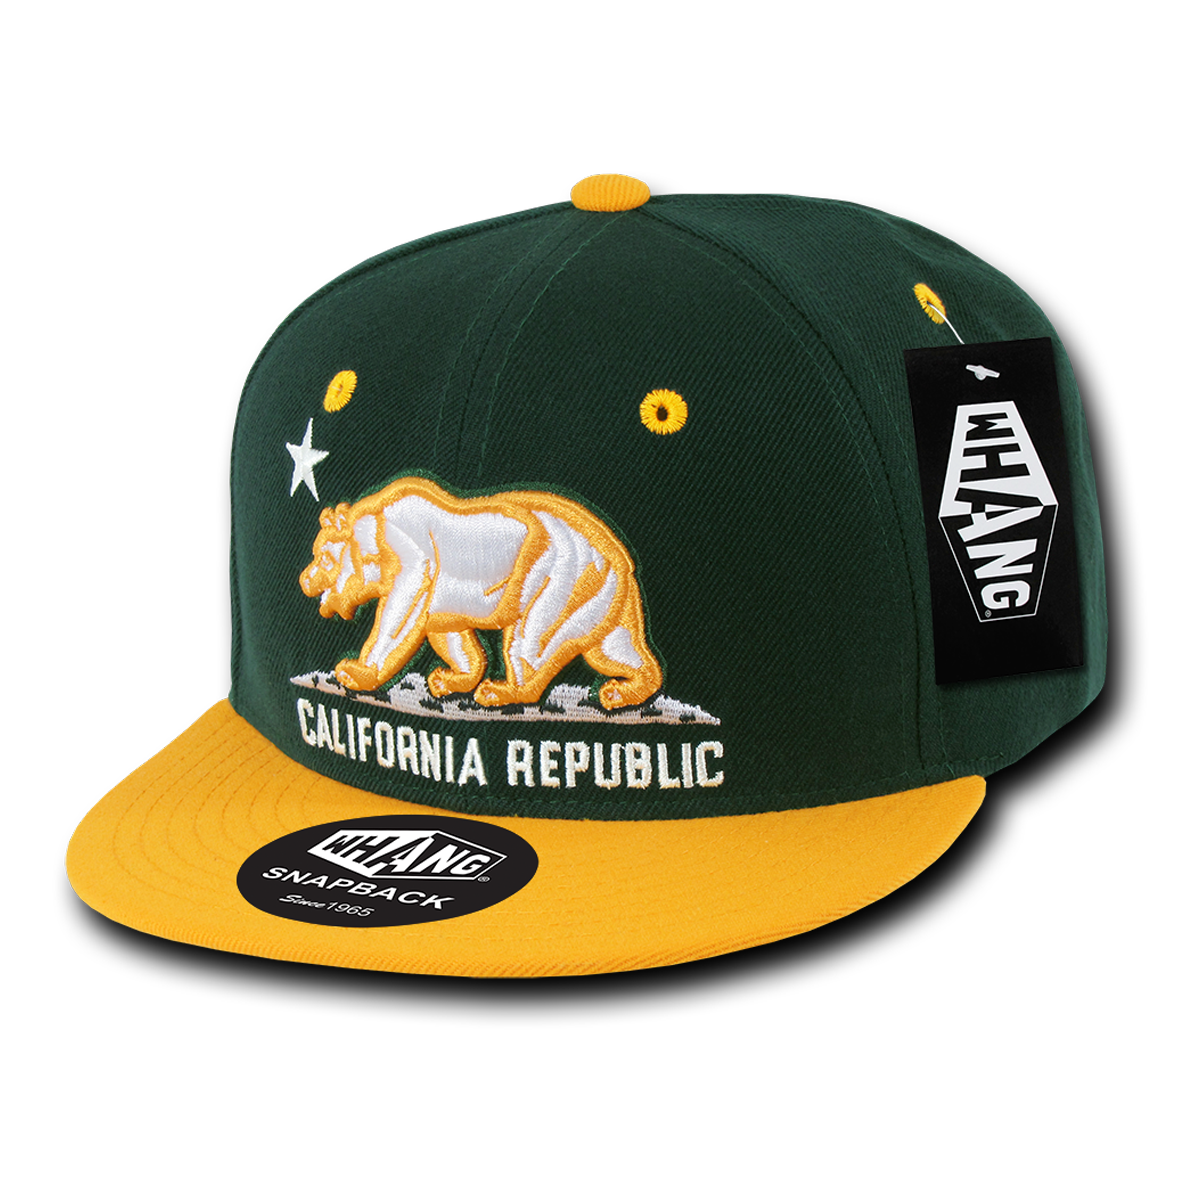 California Republic Cali State Bear Flag Oakland Snapback Hat by Whang